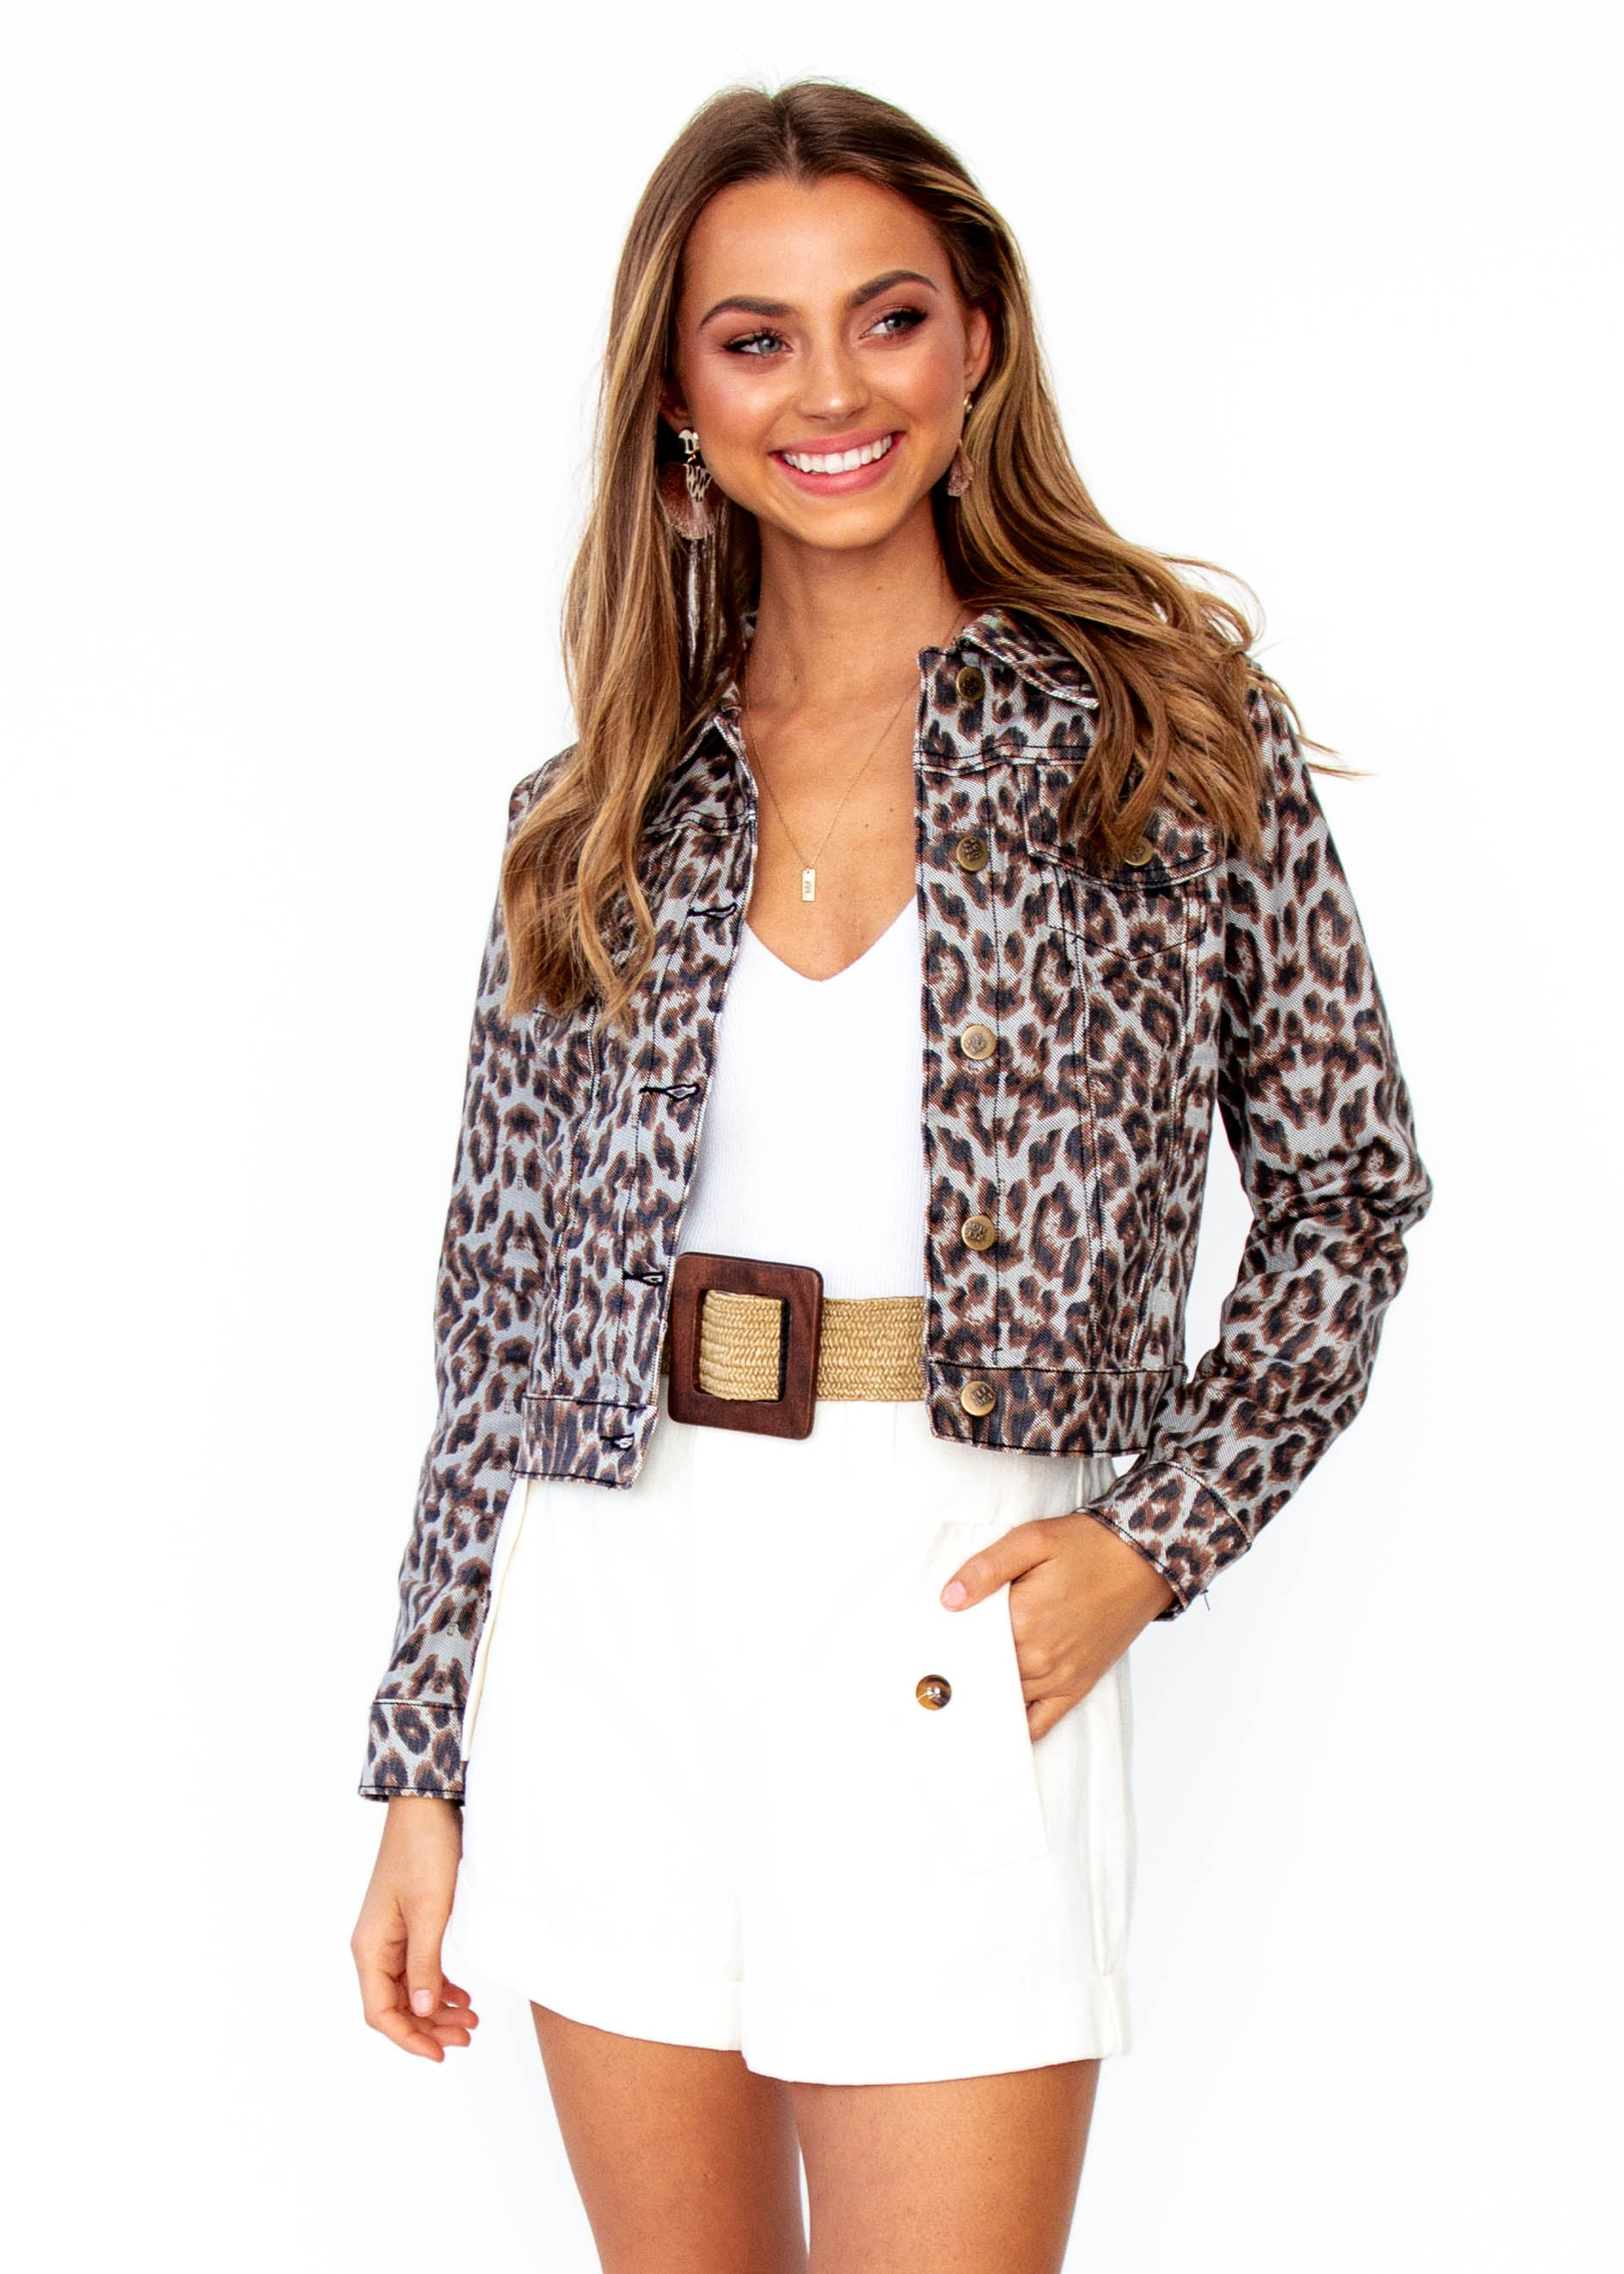 Women's Next To Nothing Jacket - Leopard Print